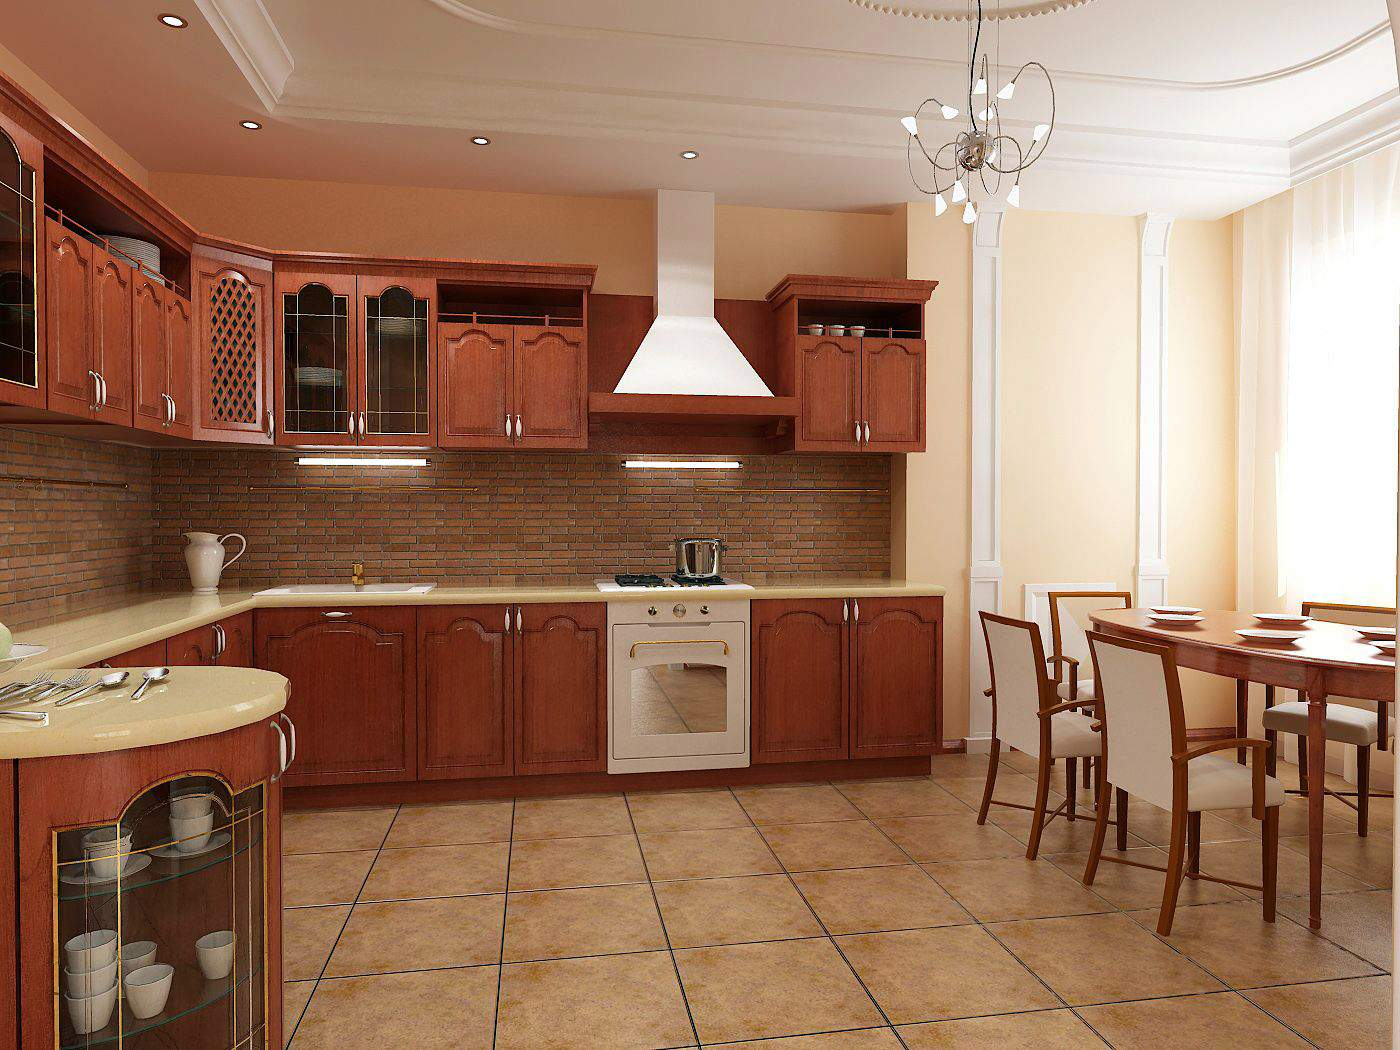 Small Interiors Of Basic Kitchen Design